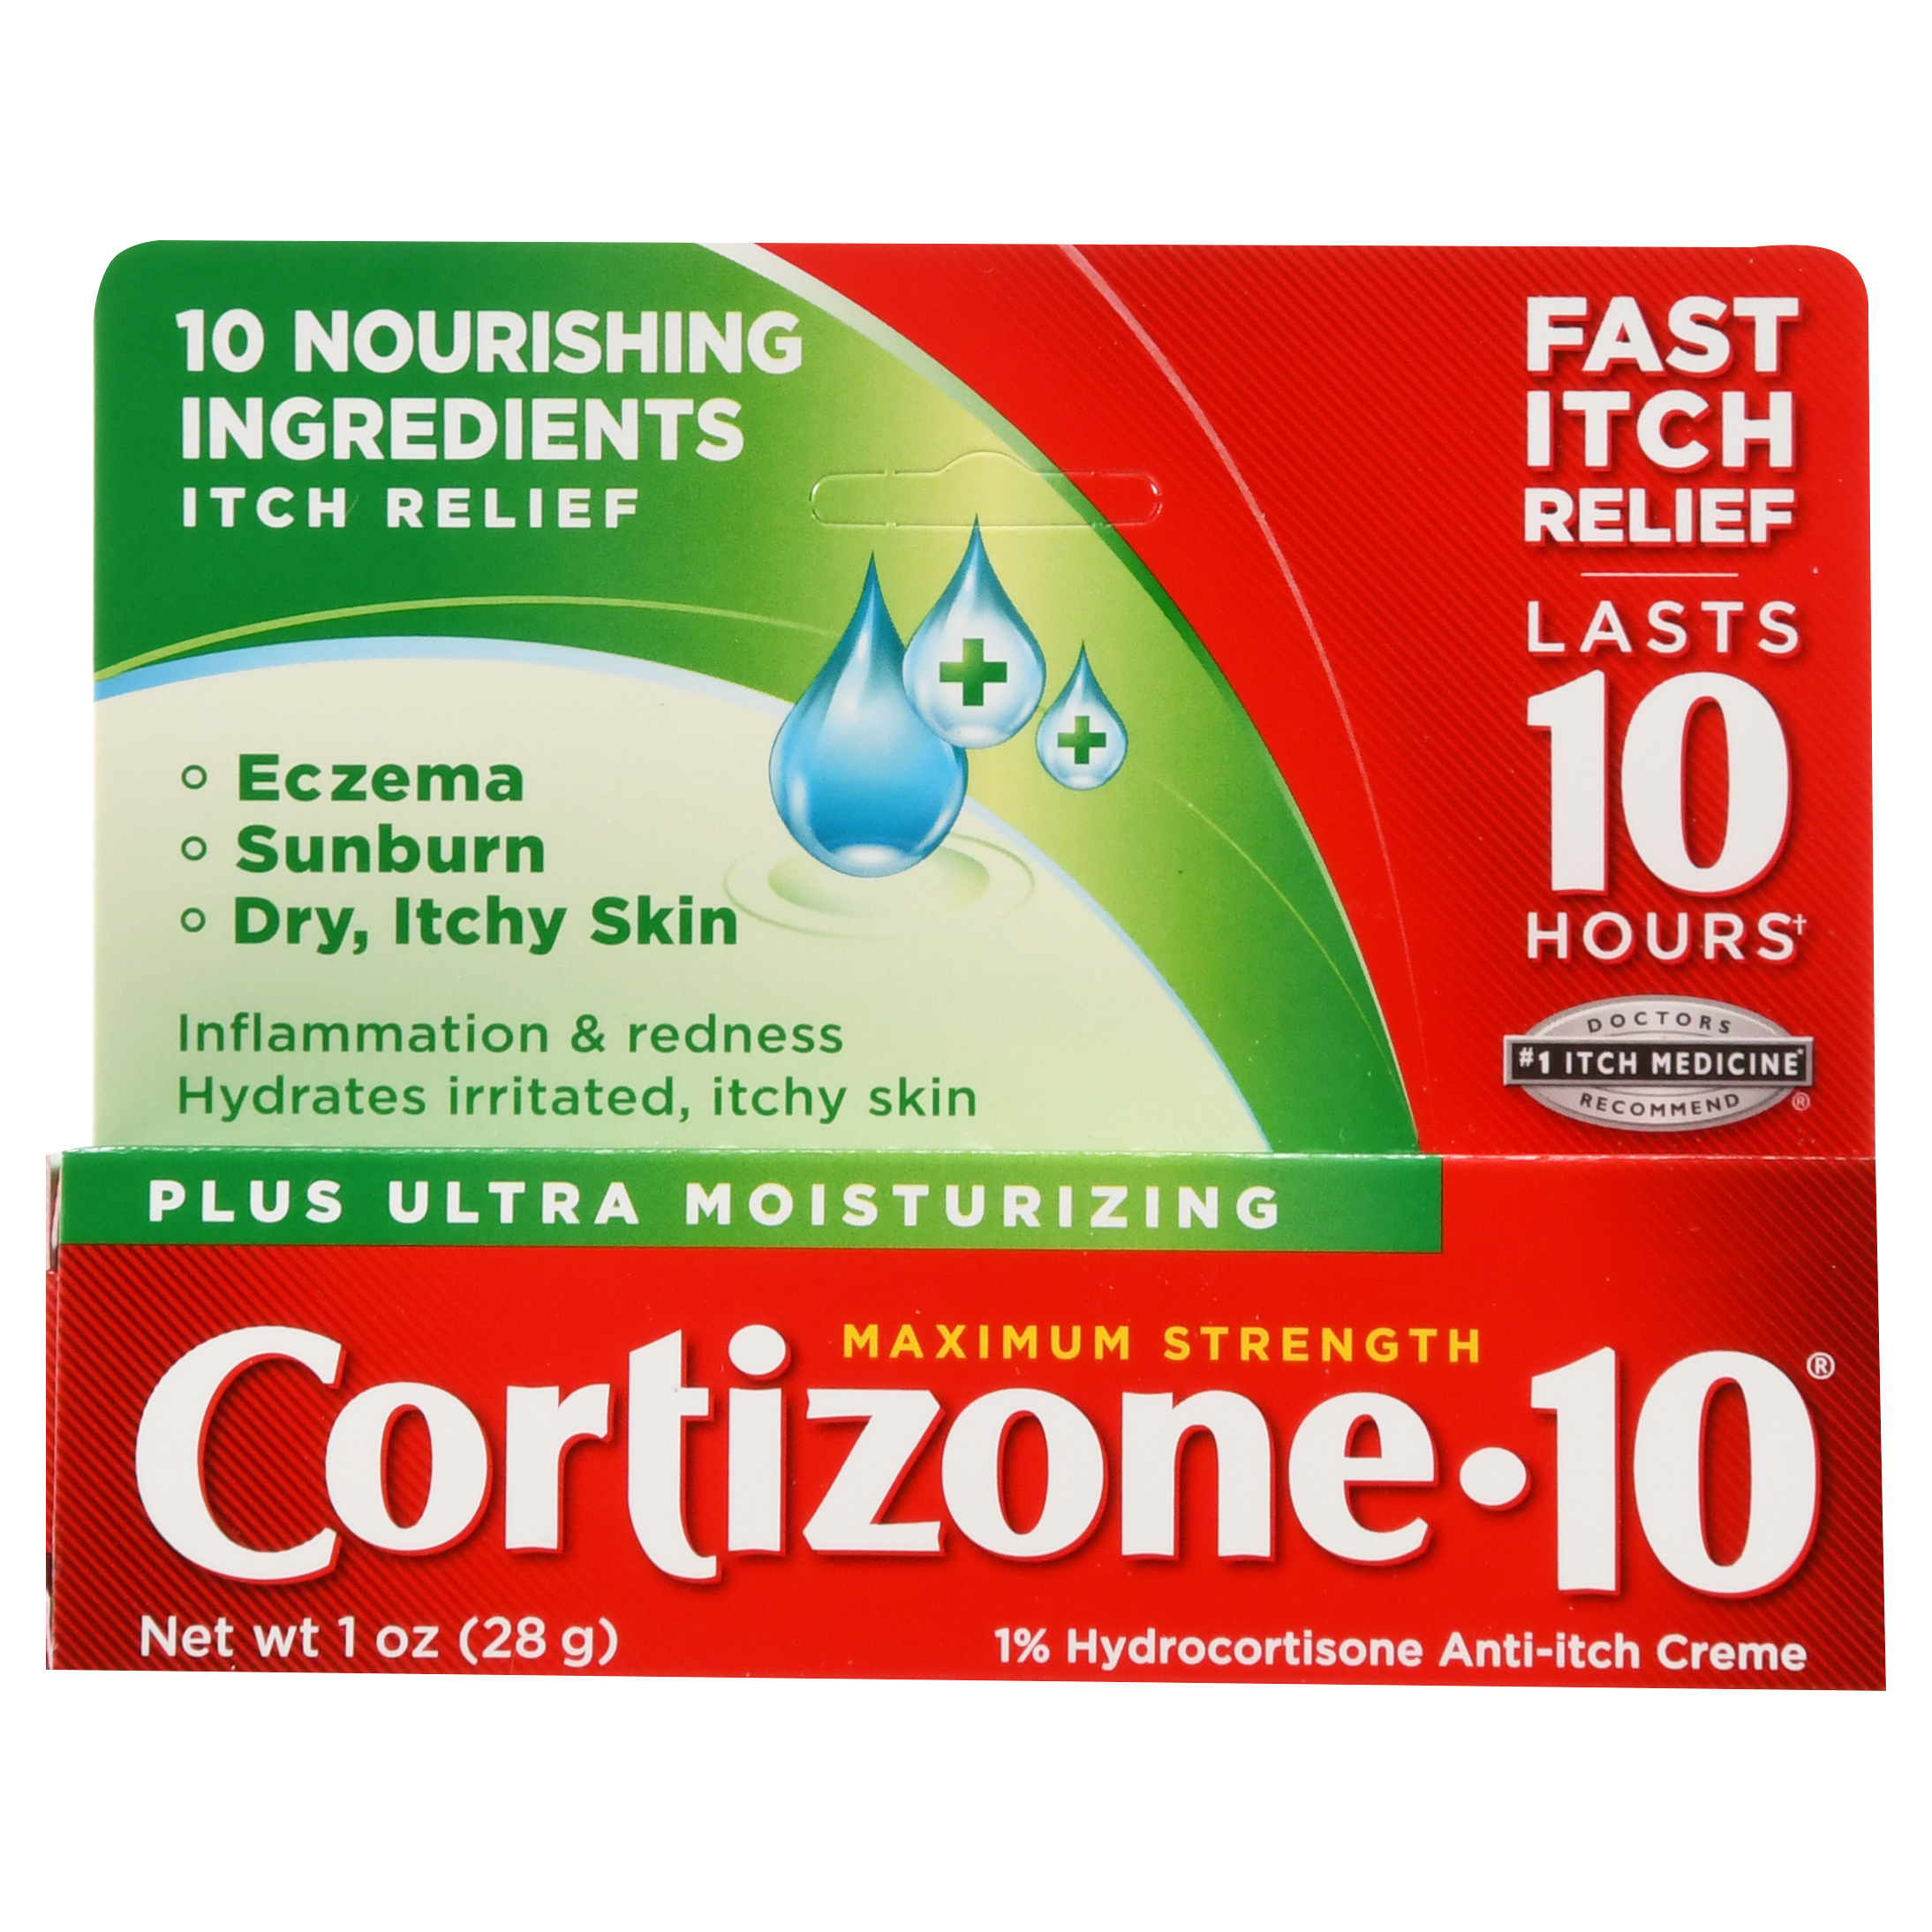 Cortizone 10 Plus Ultra Moisturizing Anti-Itch Creme 1oz